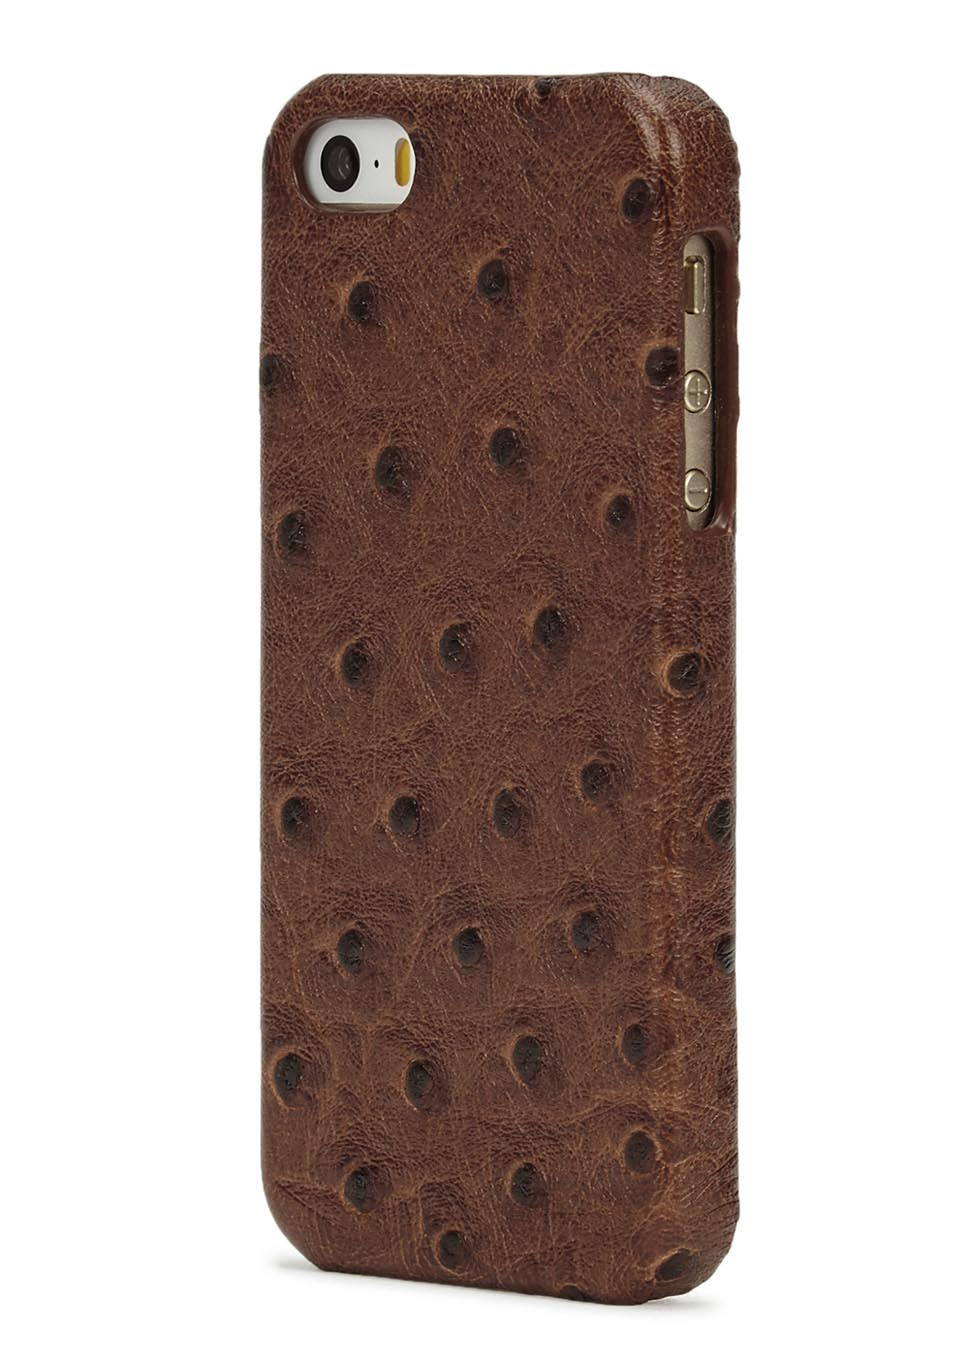 Ostrich-effect leather iPhone 5/5S/SE case - The Case Factory